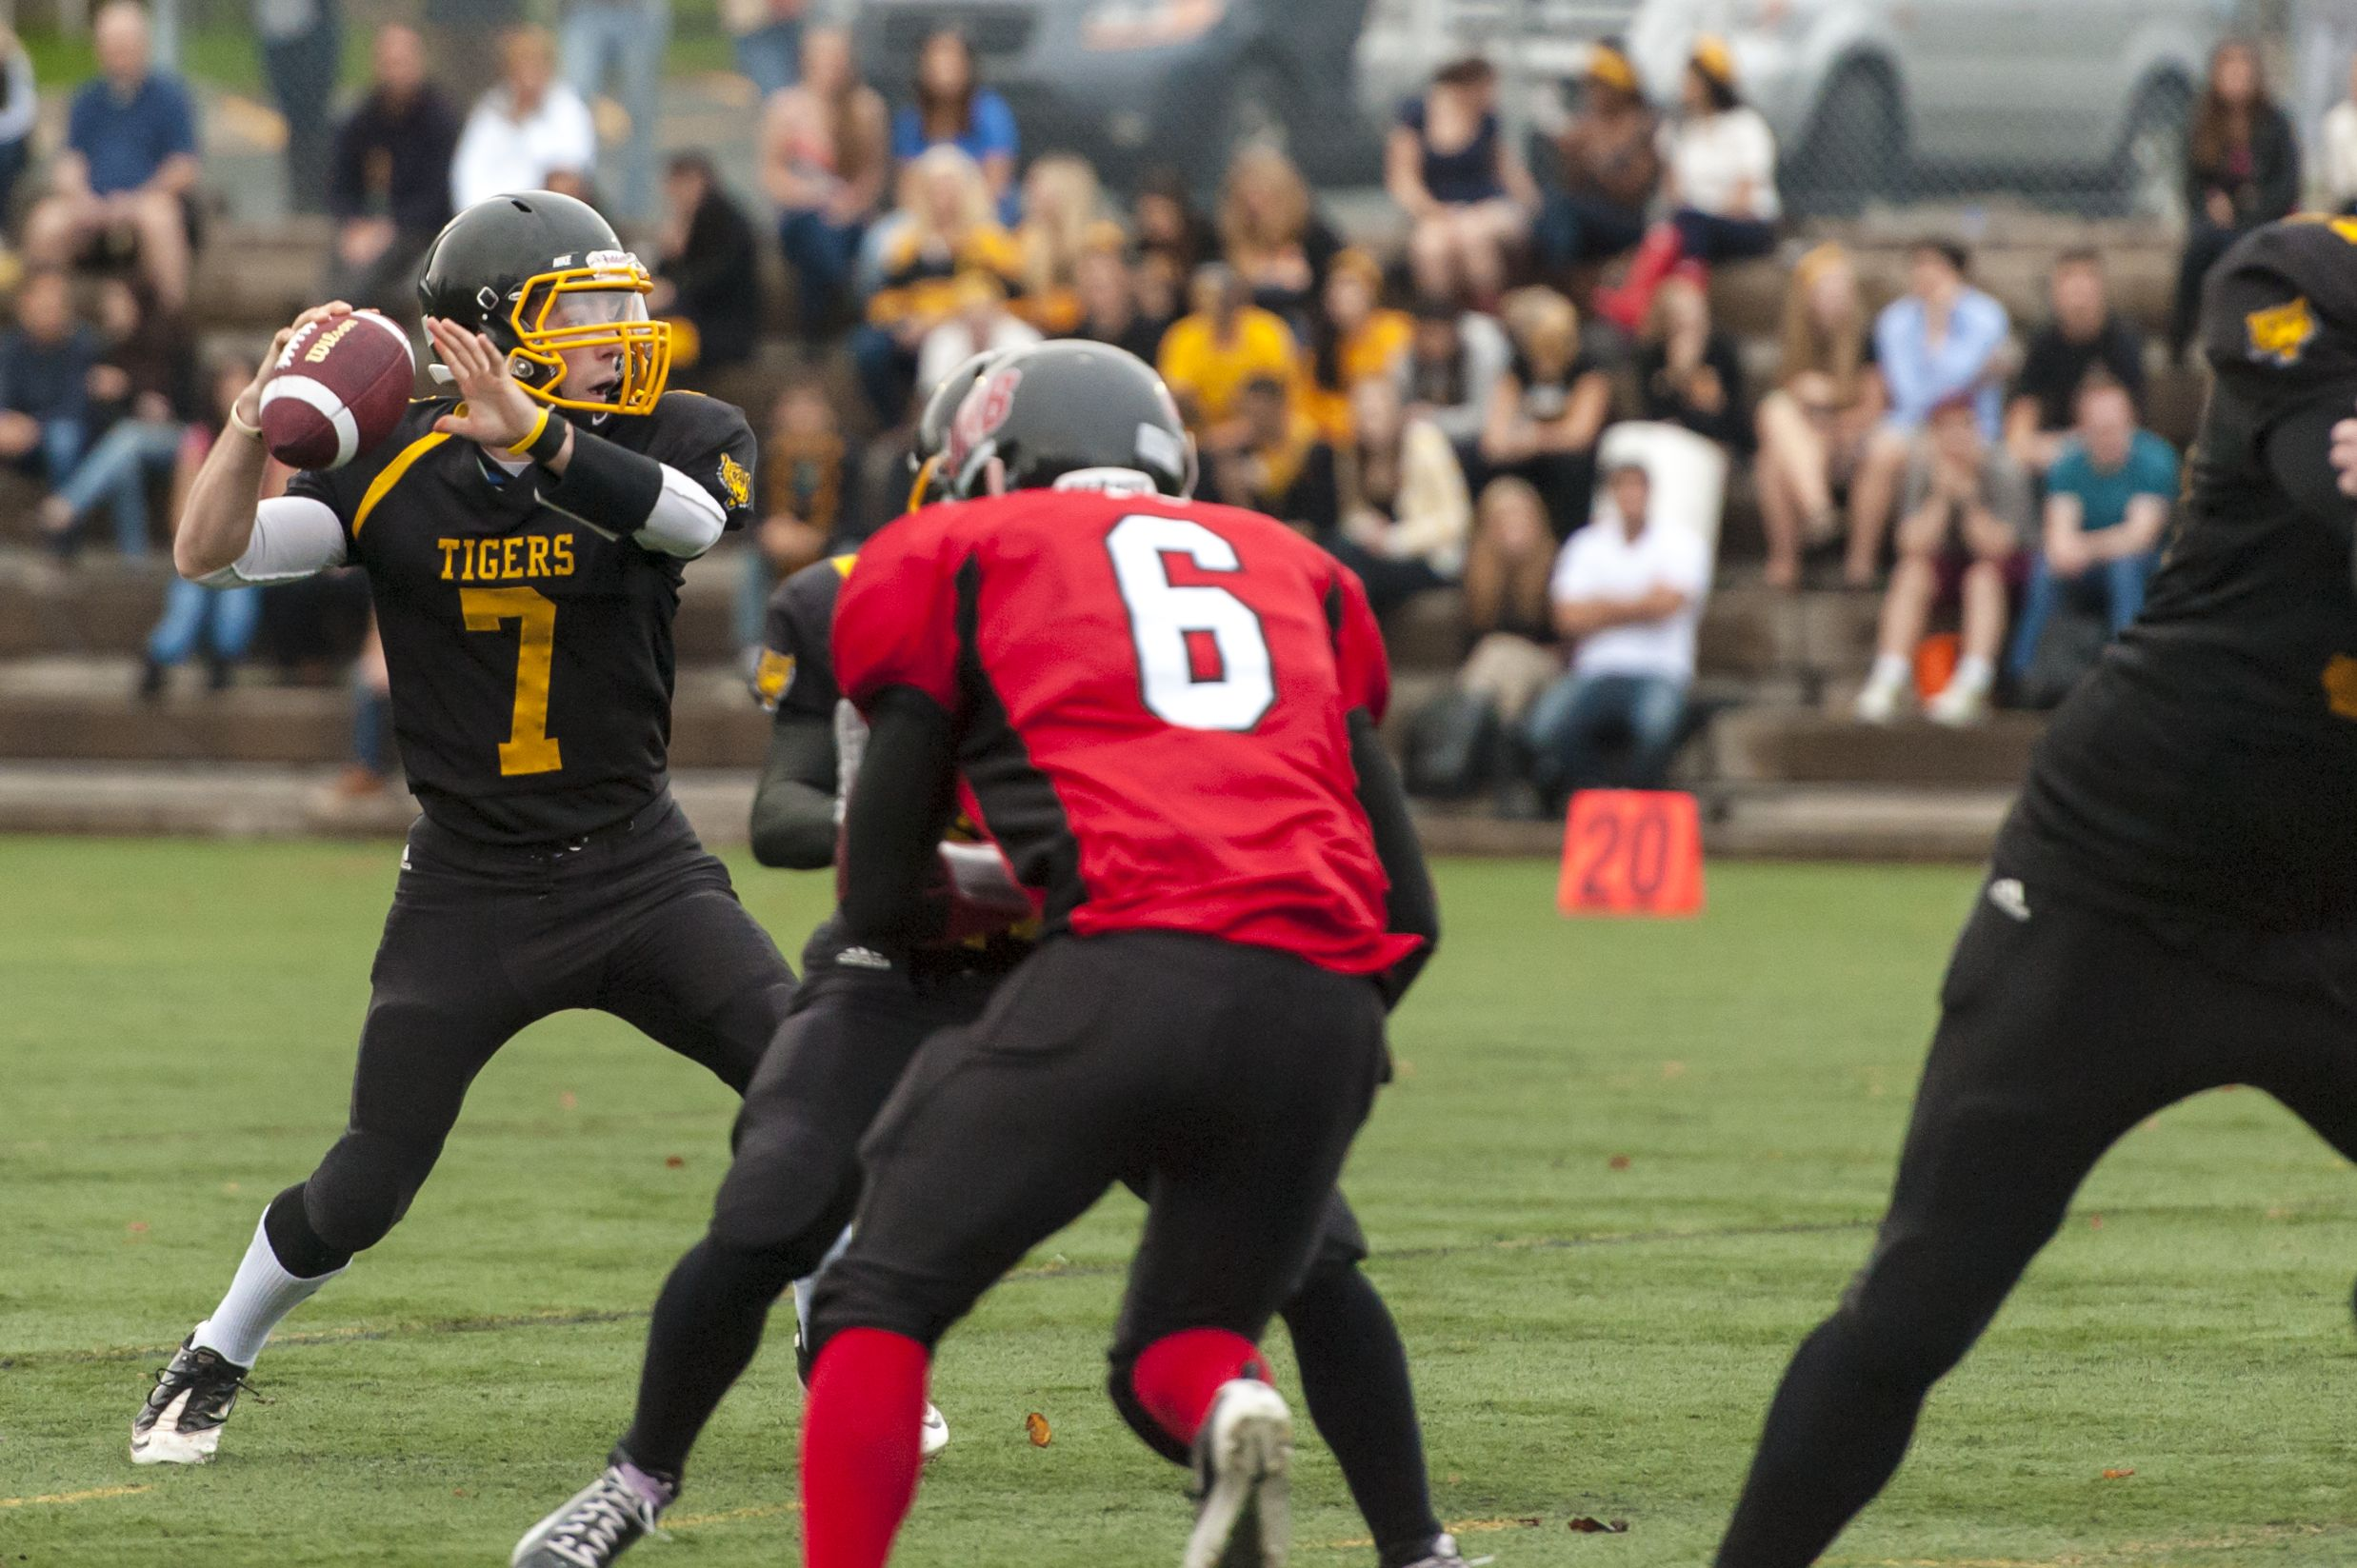 Nick Hunsley (7) drops back to pass in the Sept. 14 game. (Chris Parent photo)